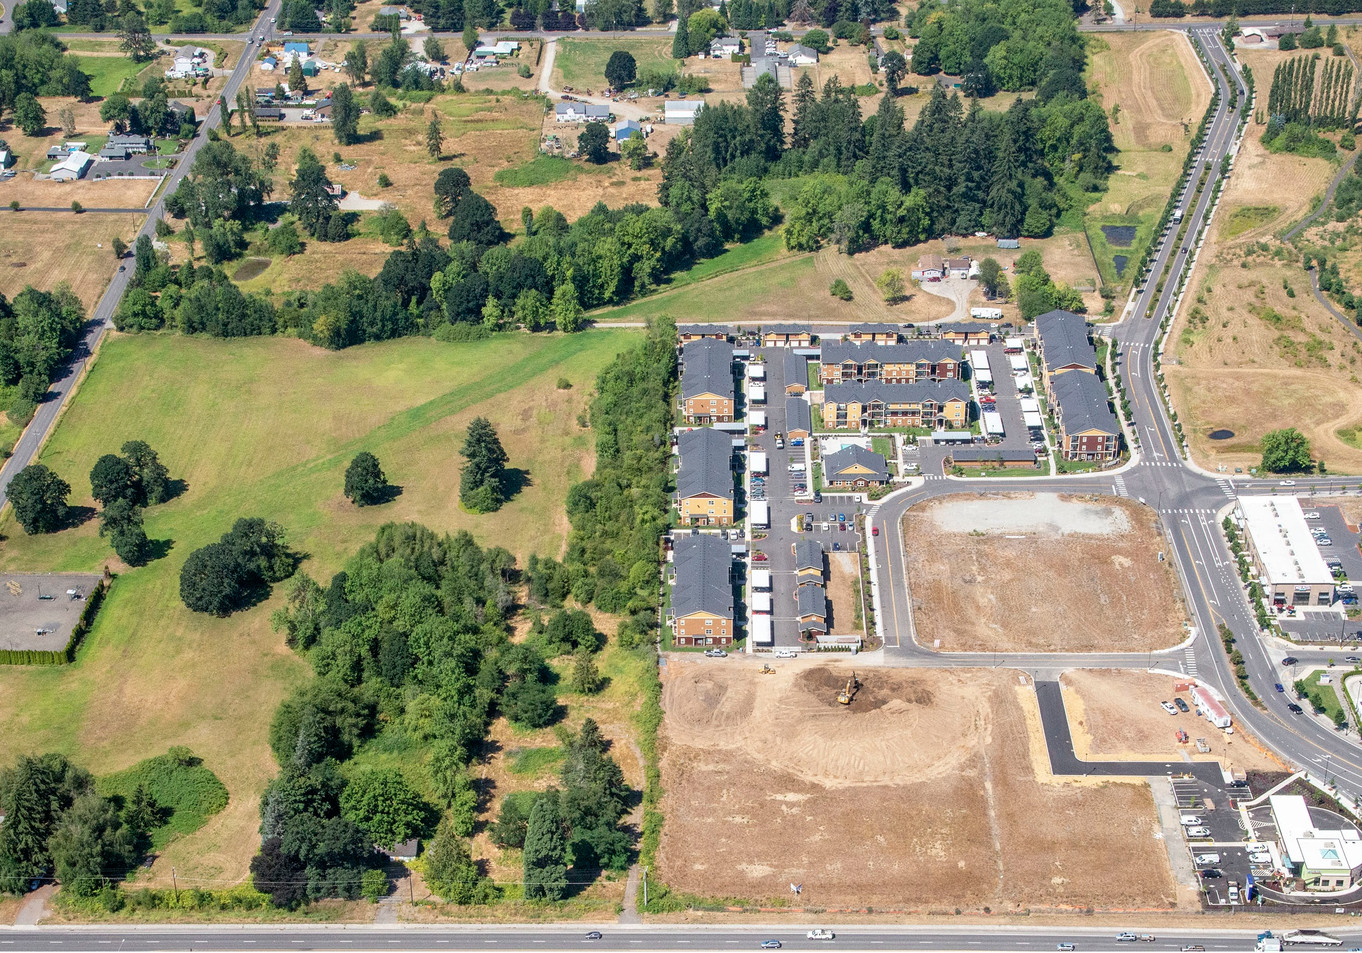 Project Aerial 7-26-18.jpg